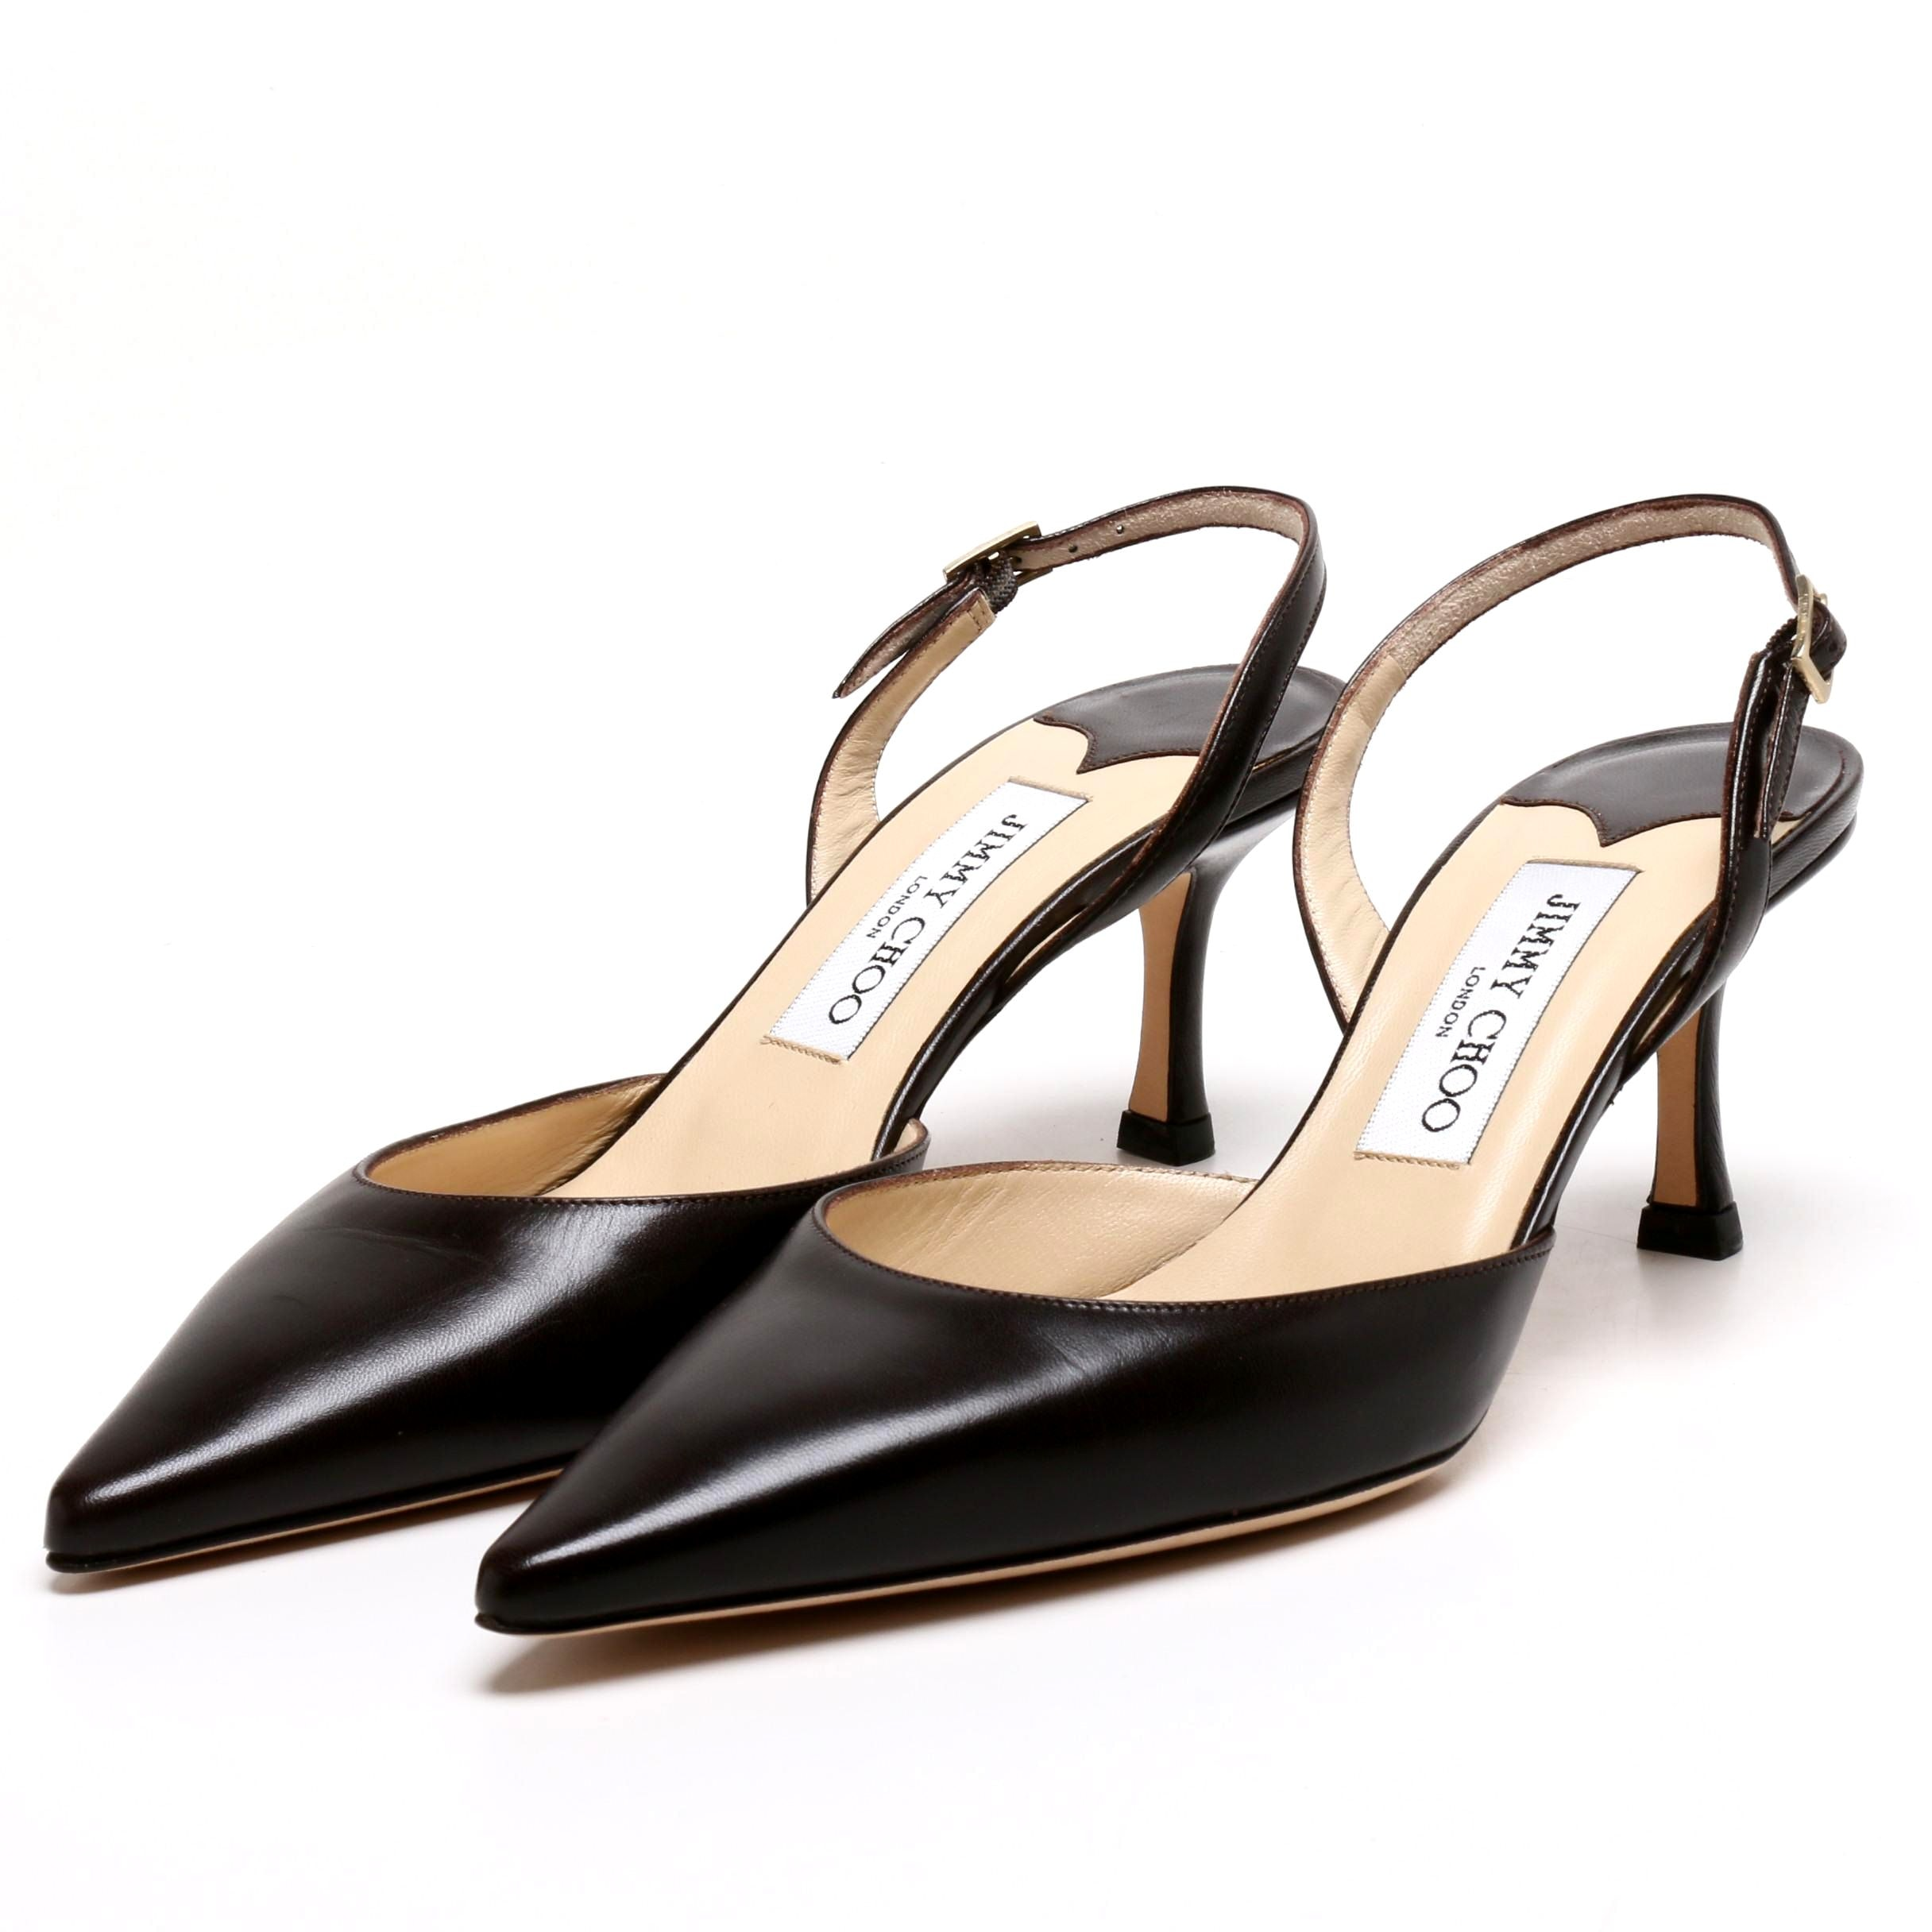 Jimmy Choo London Dark Brown Leather Slingback Heels